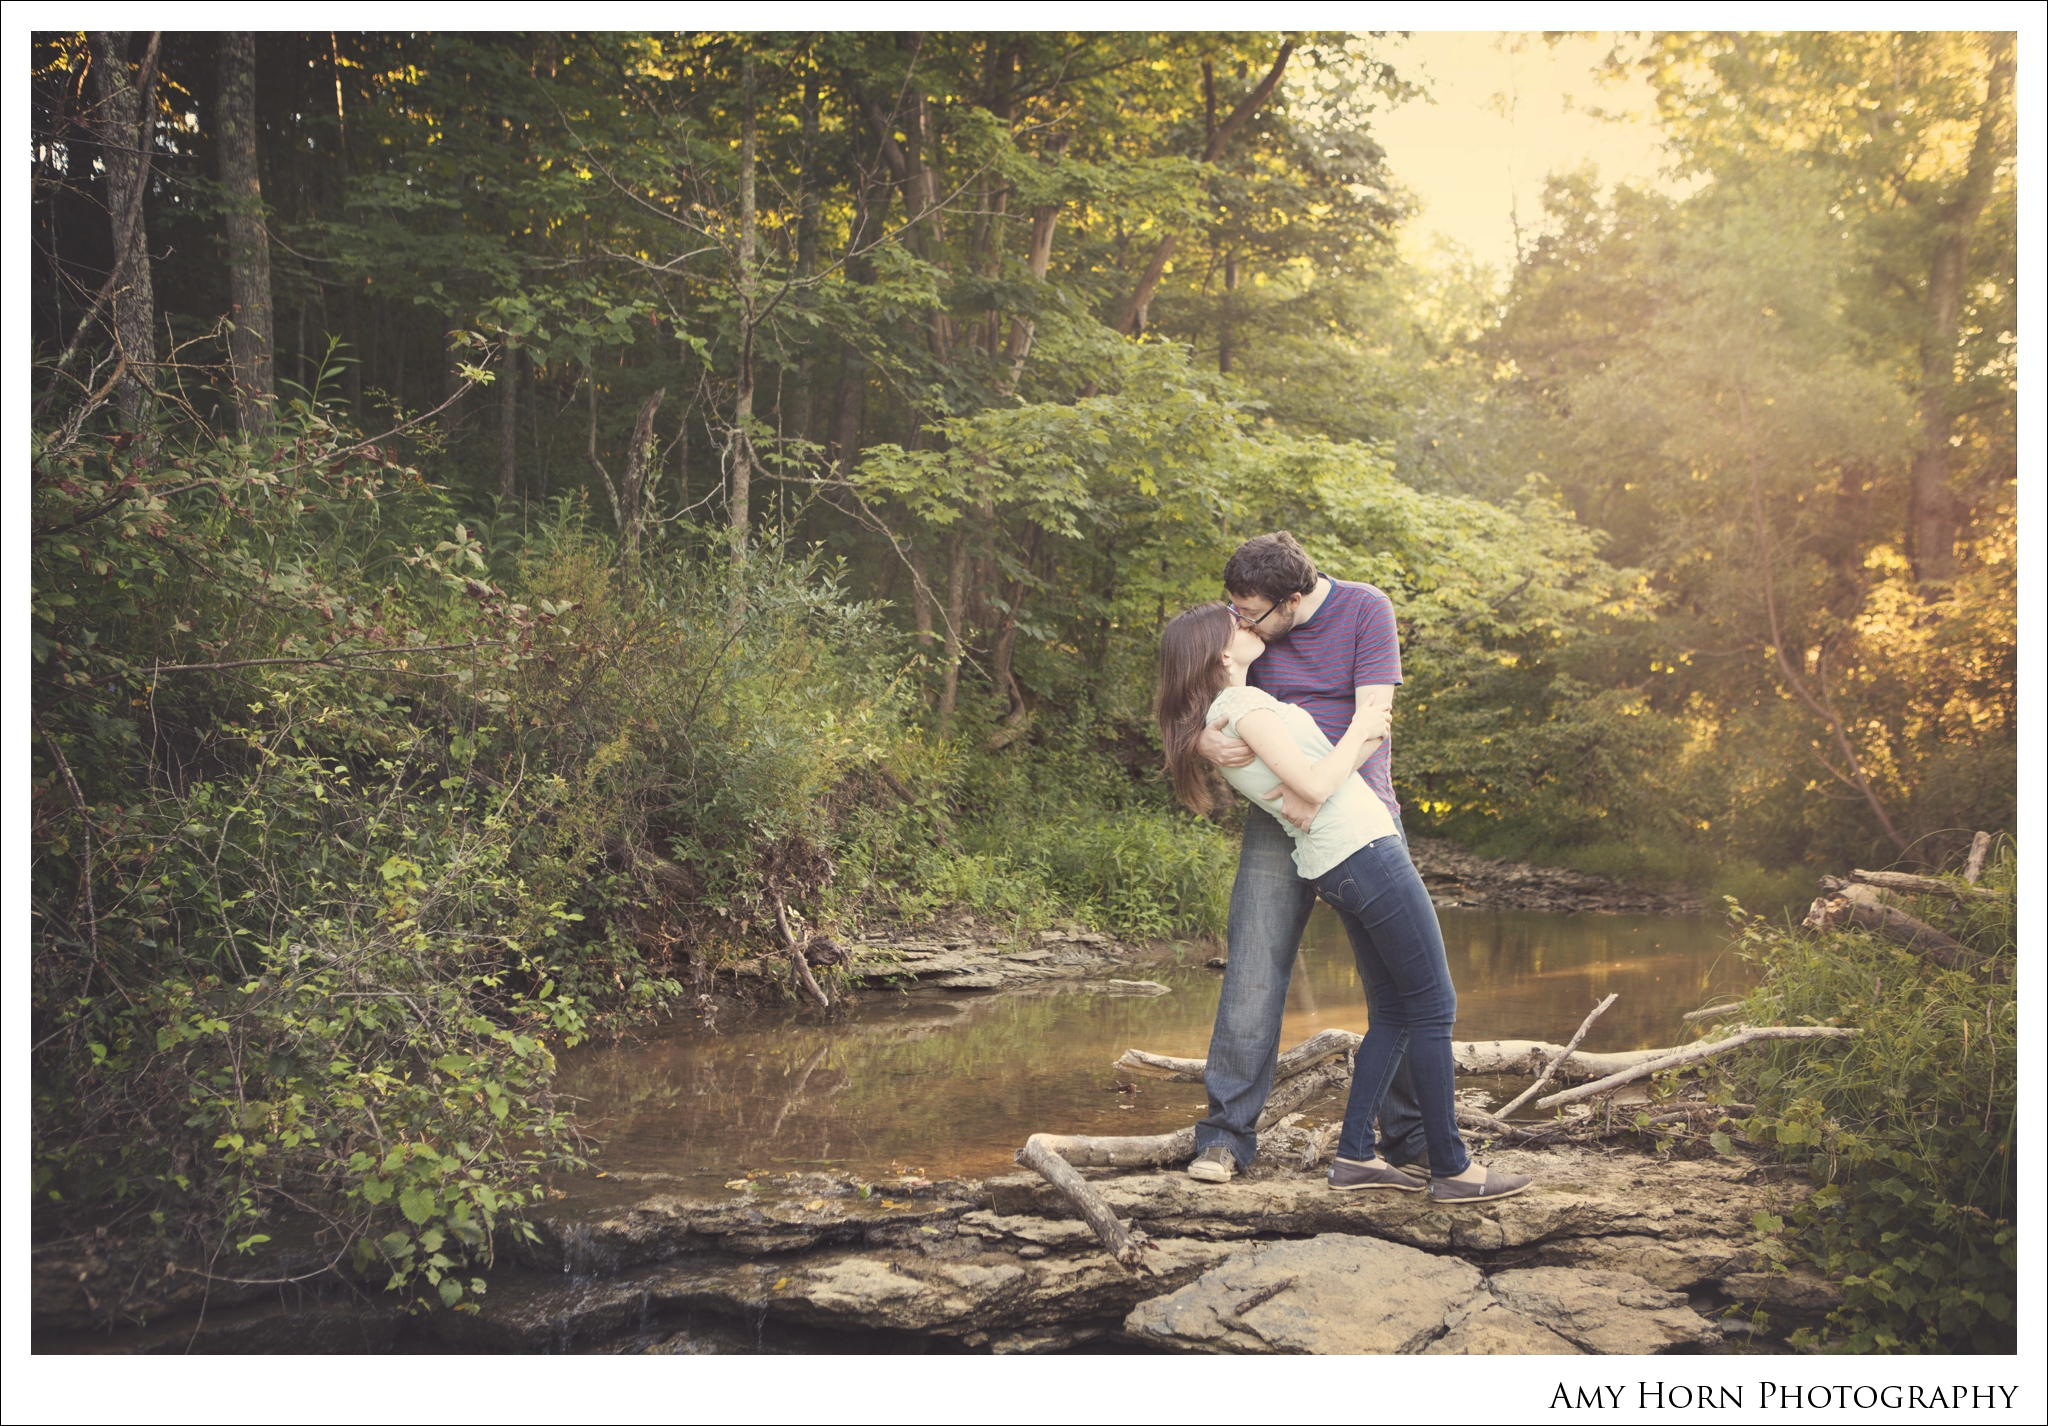 madison indiana wedding photographer, lawrenceburg indiana wedding, amy horn, engagement photography, field photography, country engagement session, wedding and engagement session ideas, engagement session016.jpg